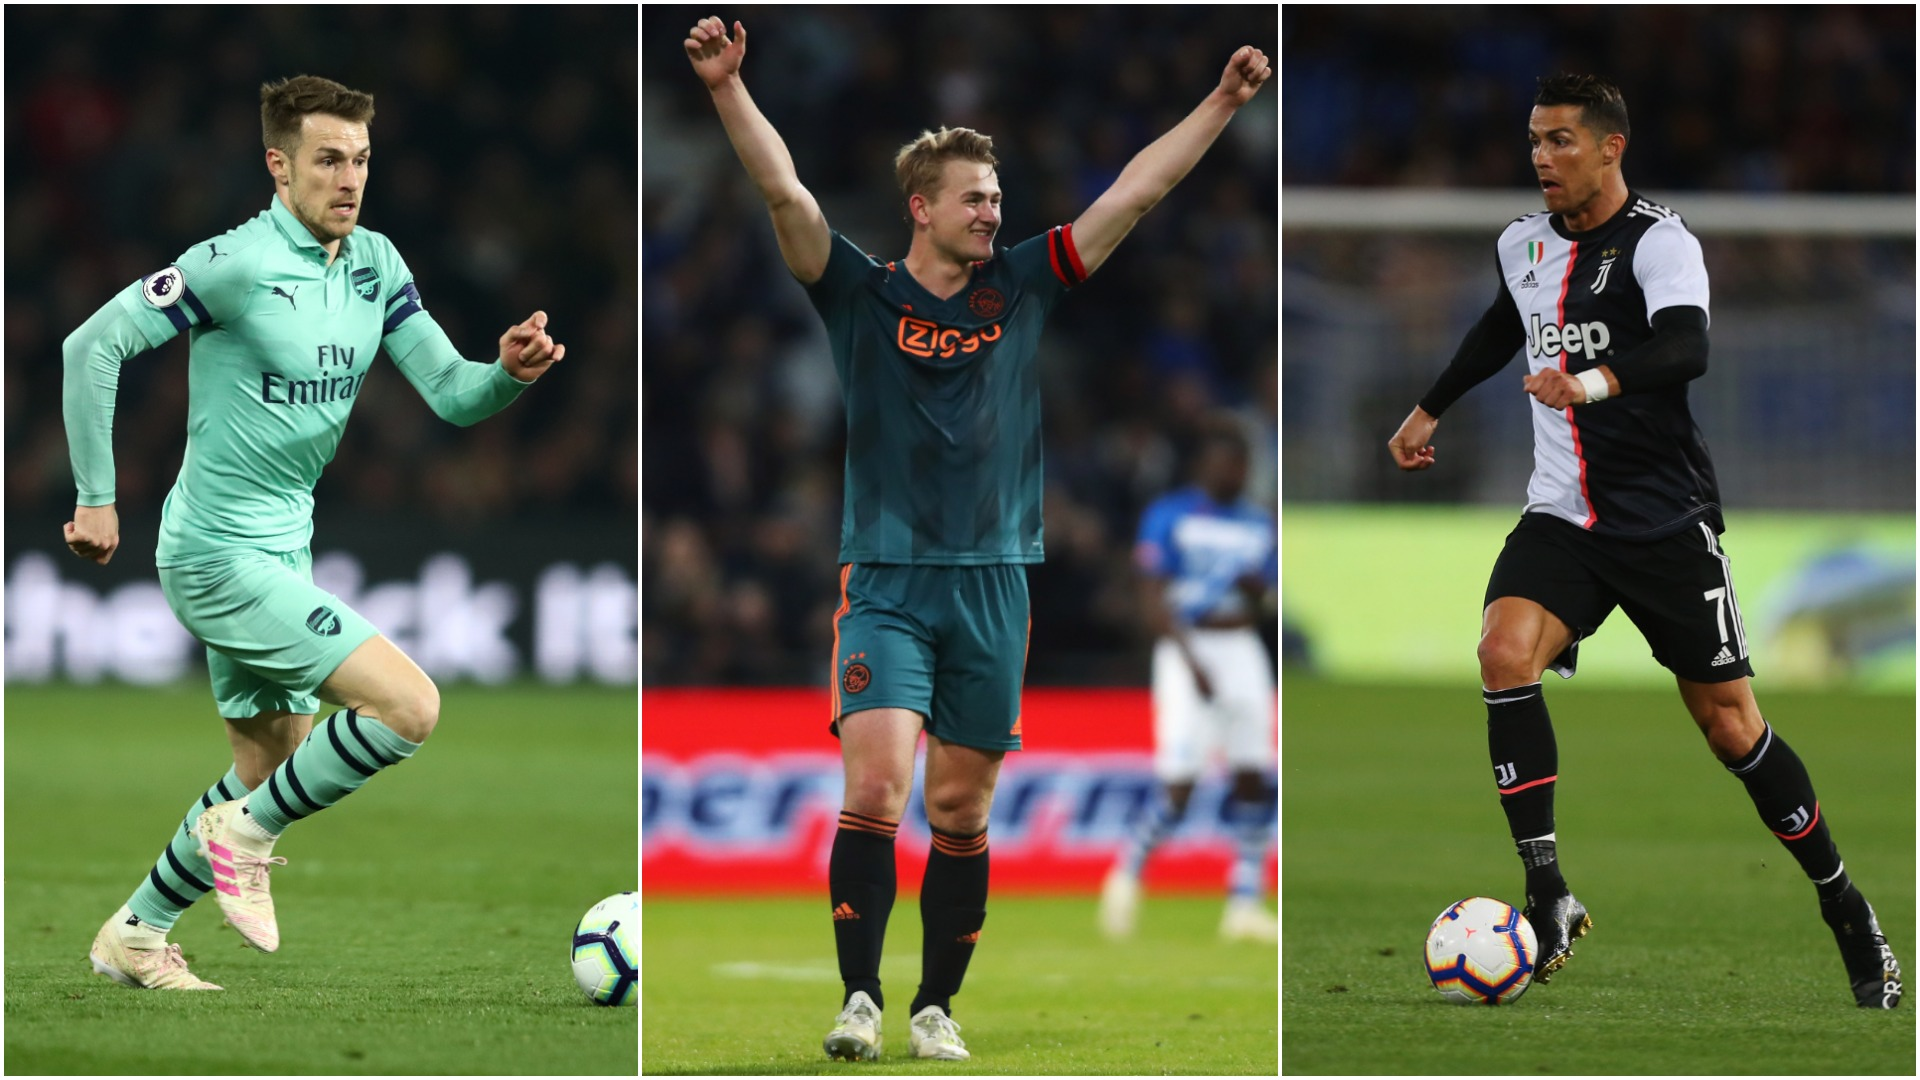 De Ligt to Juve: How Sarri's Bianconeri could line up next season